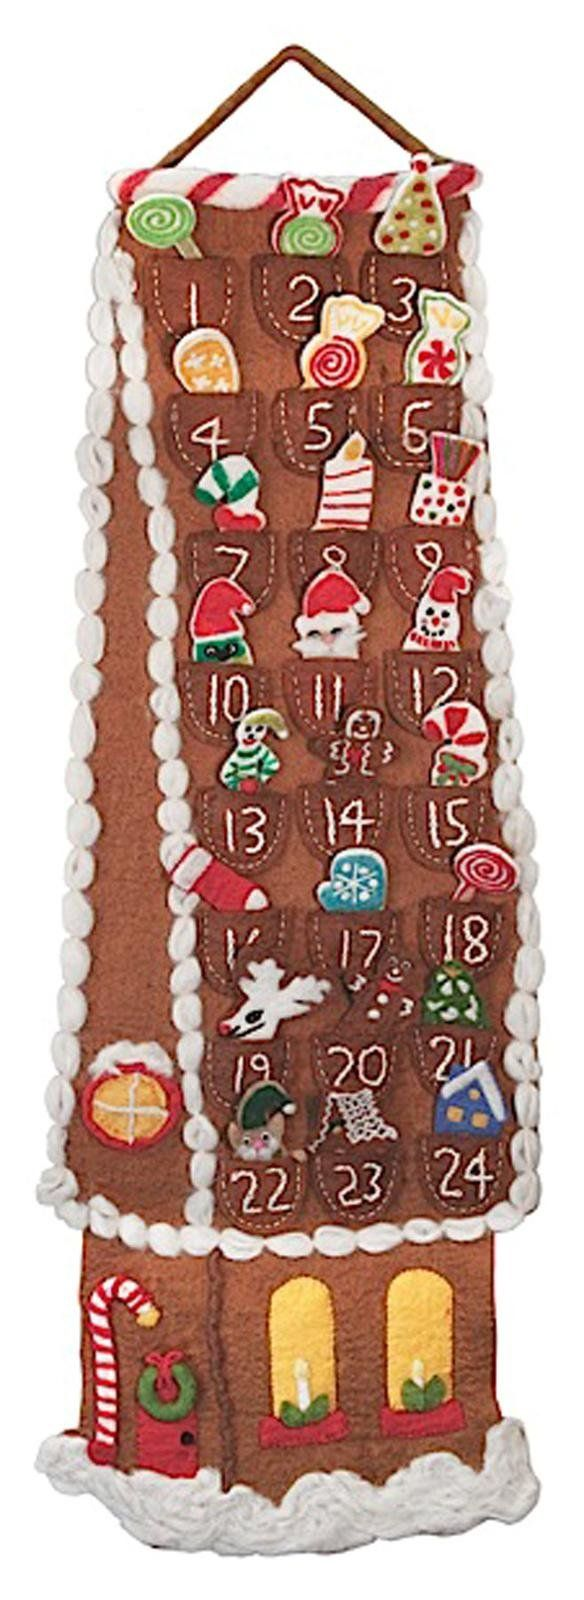 Advent cal gingerbread house free shipping